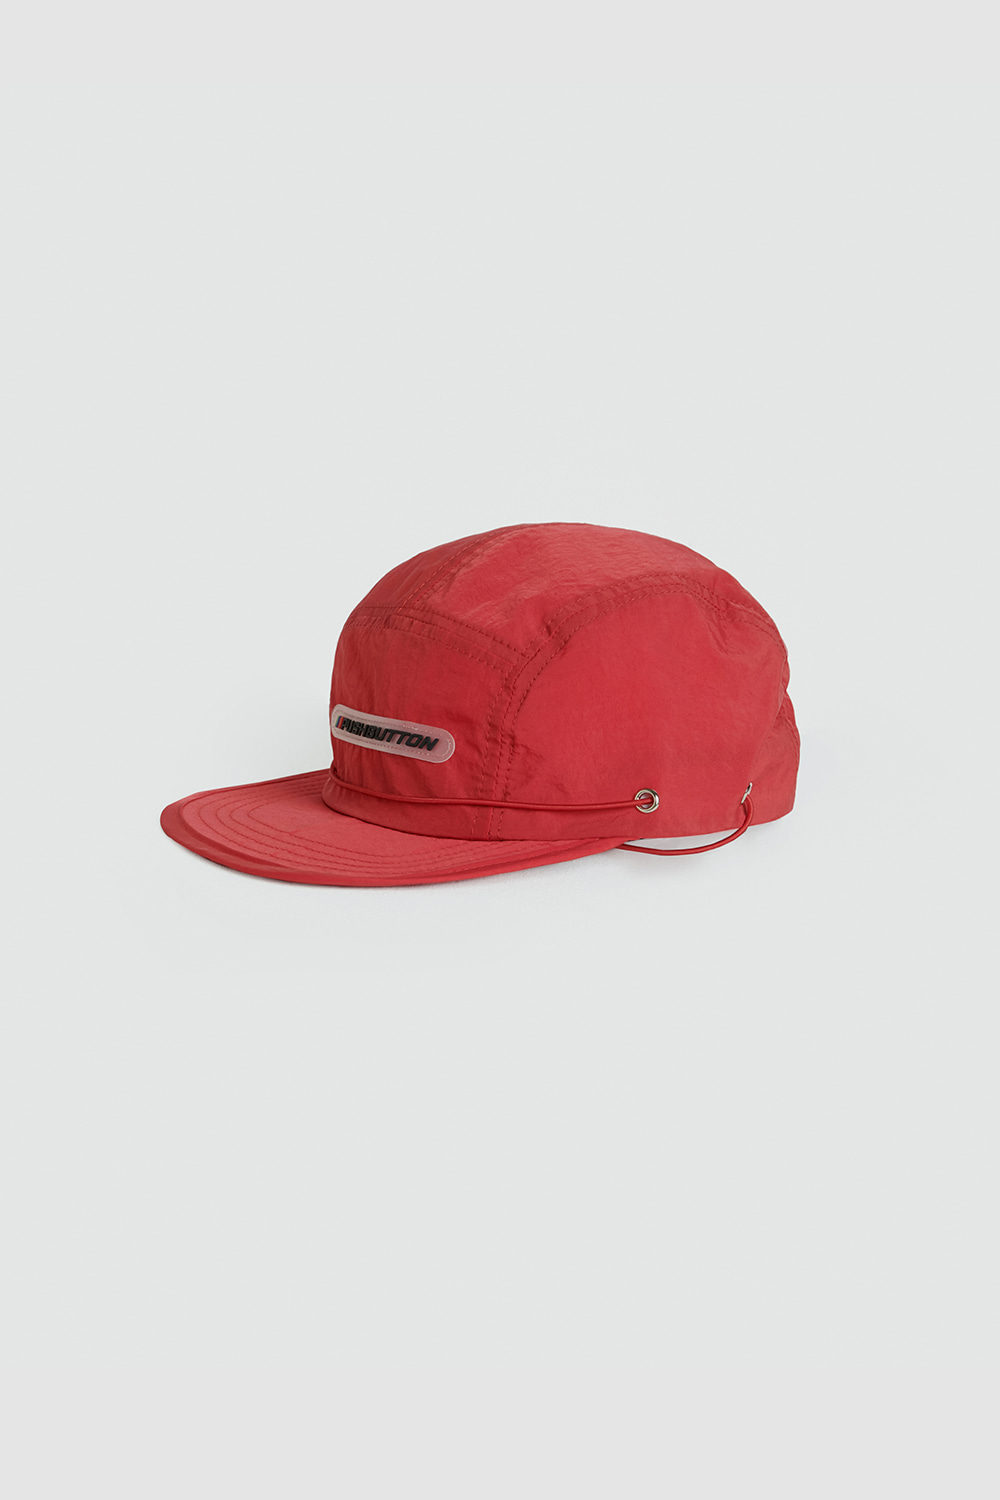 SS21 RUBBER LOGO RED CAP